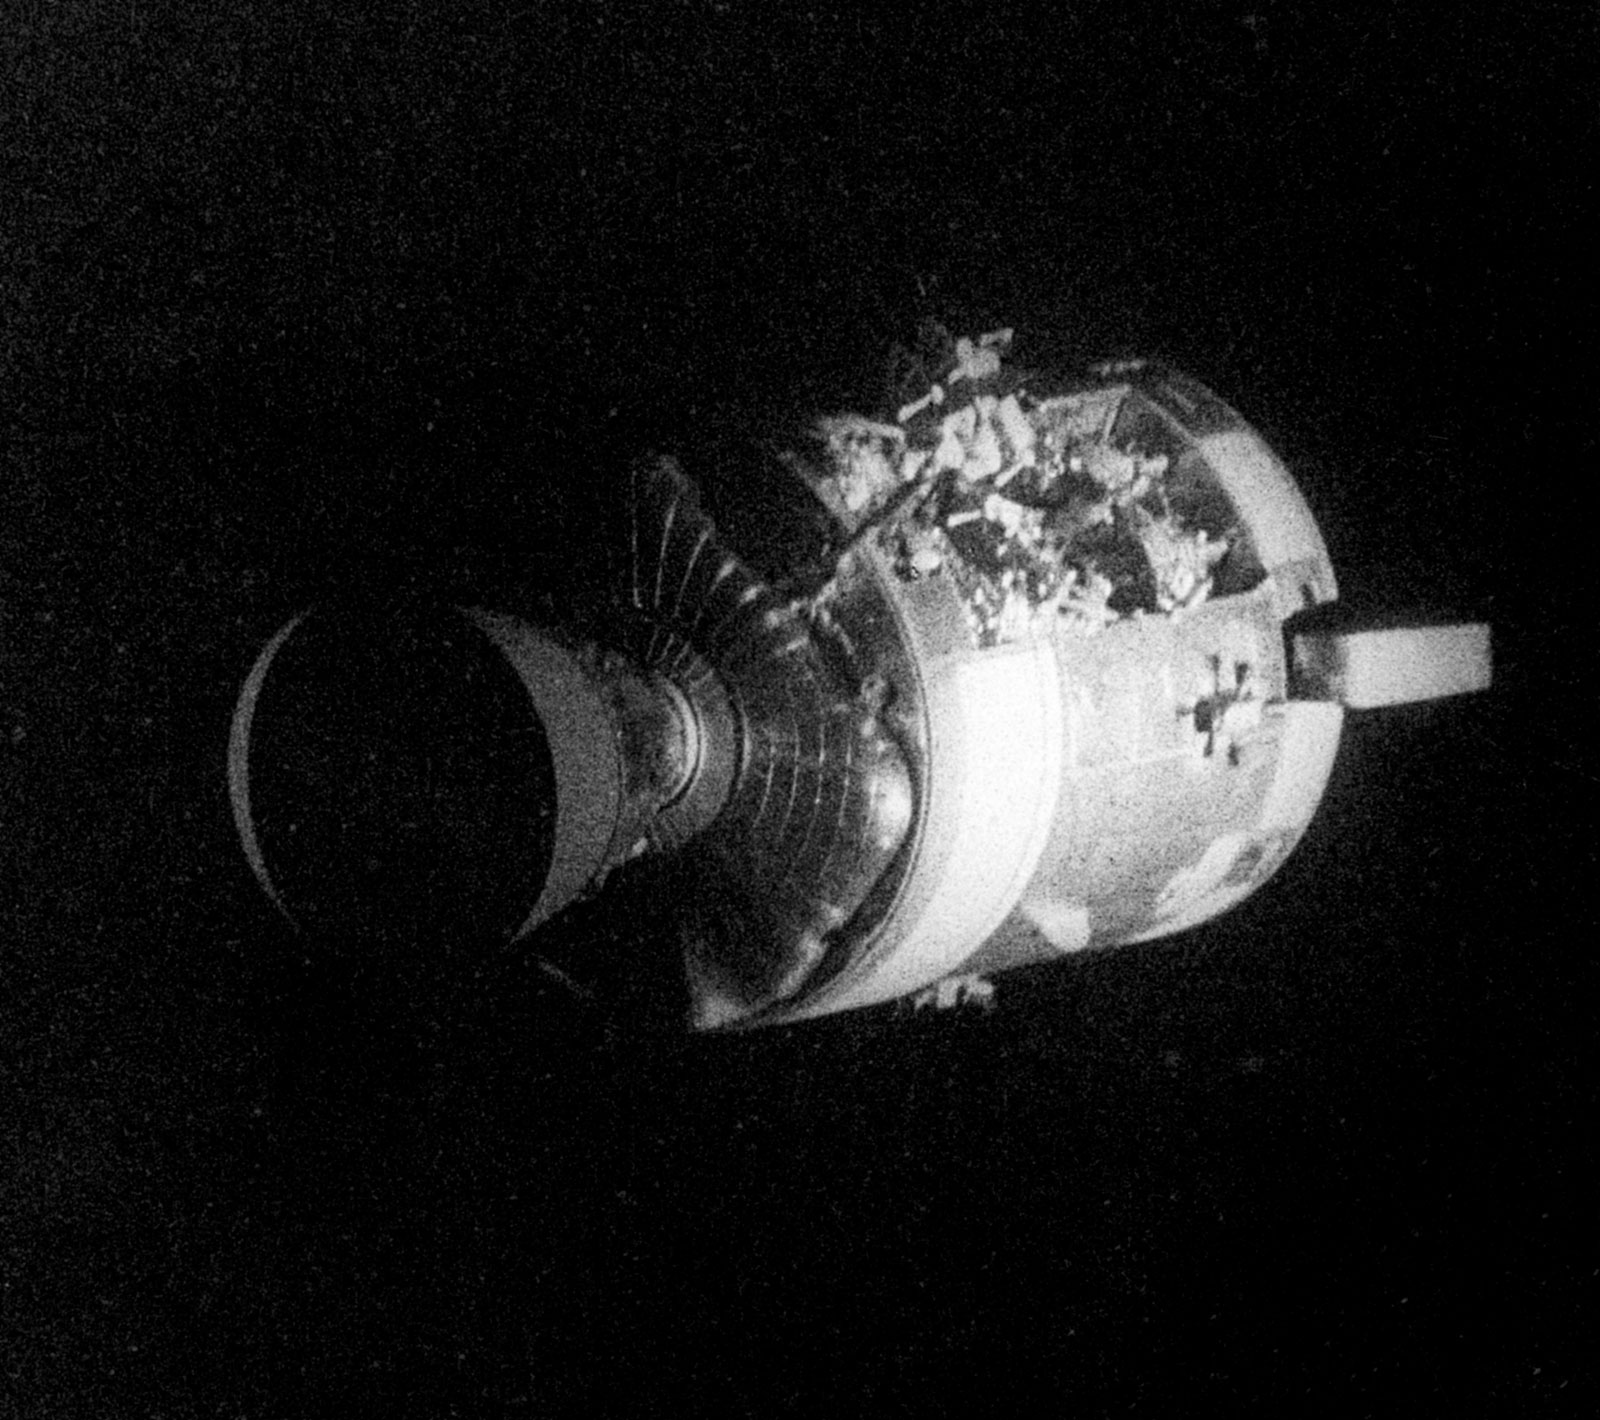 Black and White photo of the Apollo 13 SM with clear damage on one side.